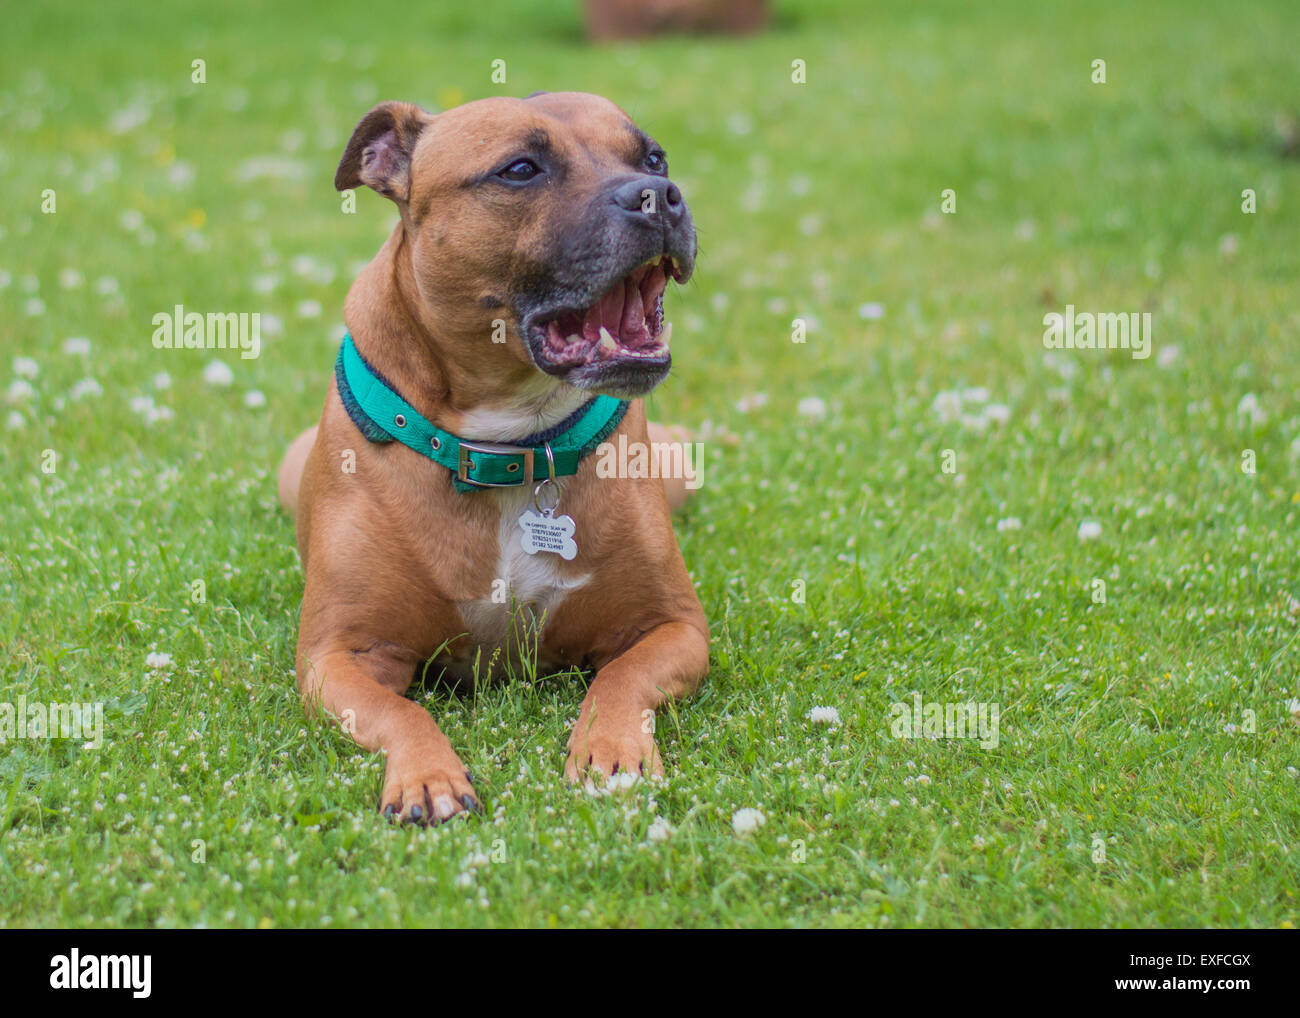 Red Staffordshire Bull Terrier - Stock Image